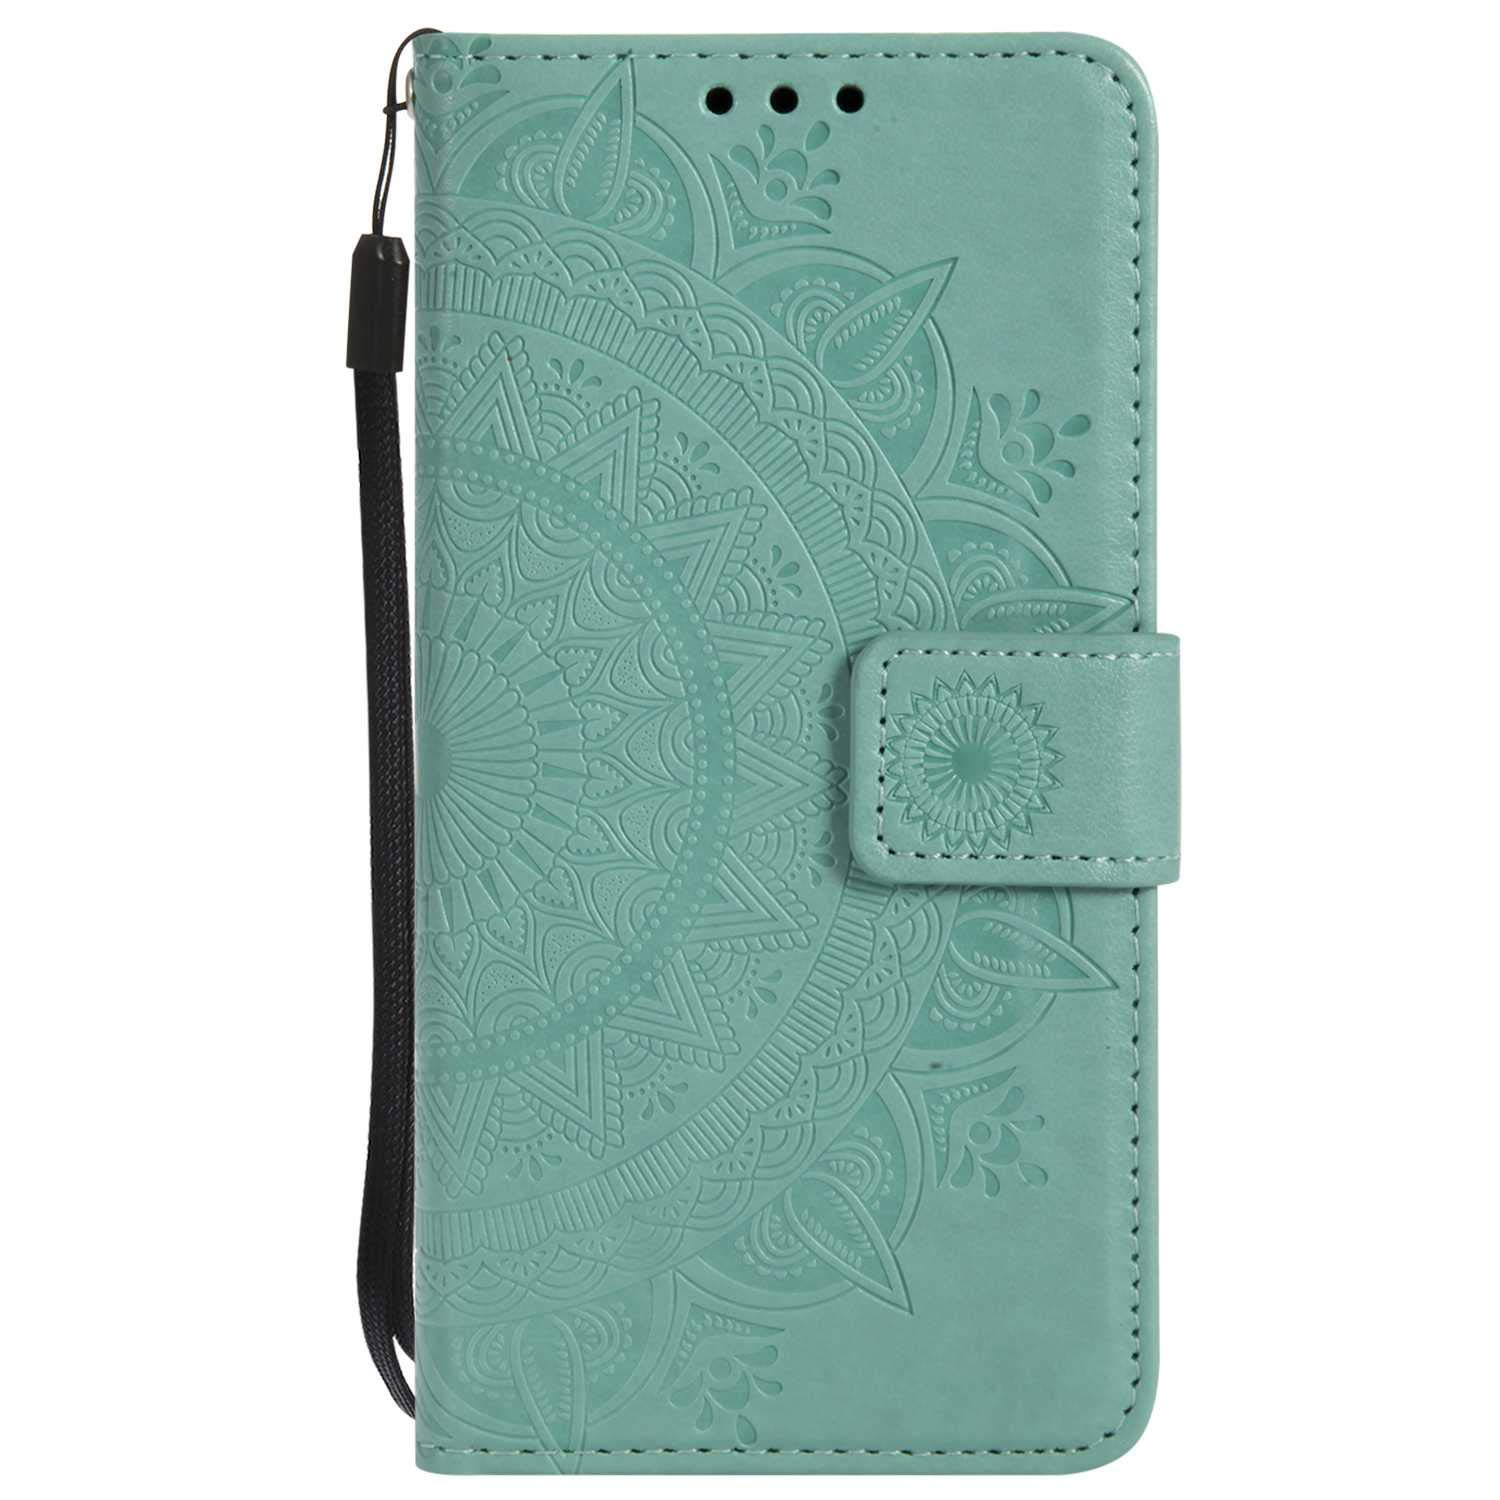 iPhone 7 8 Case, The Grafu Leather Case, Premium Wallet Case with [Card Slots] [Kickstand Function] Flip Notebook Cover for Apple iPhone 7/8, Green